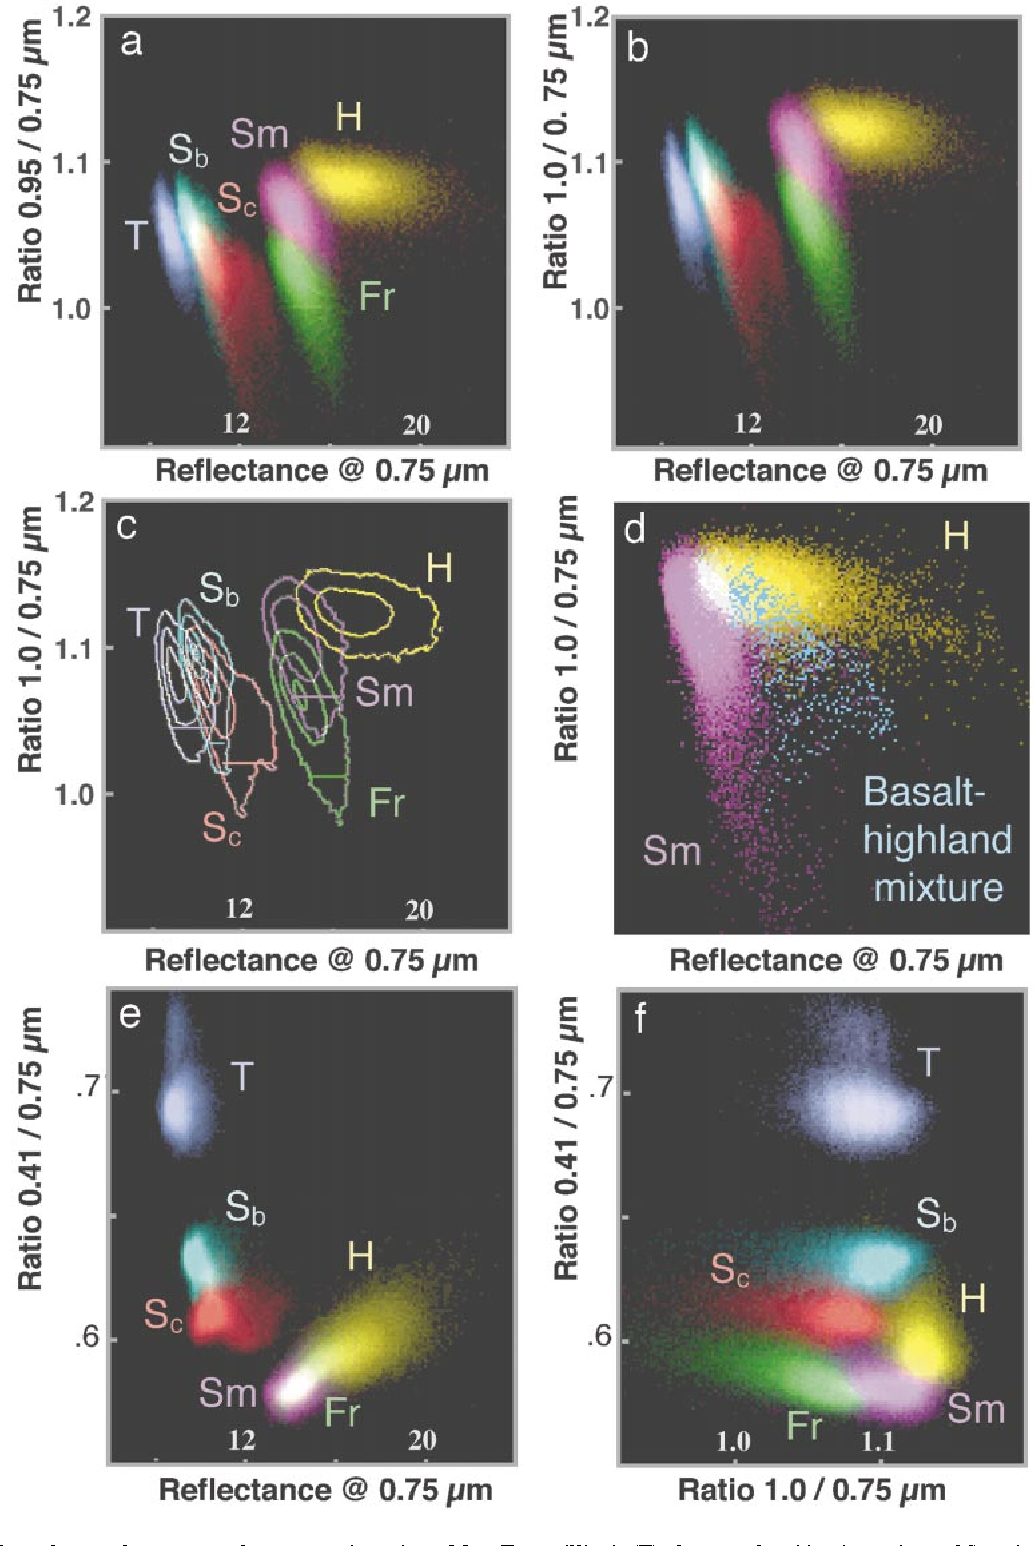 FIG. 4. Scatter plots of spectral parameters for mare study regions: Mare Tranquillitatis (T), the central and border regions of Serenitatis (Sc and Sb), Lacus Somniorum (Sm), and Mare Frigoris (Fr). For comparison, Highland materials (H) from an area near Lacus Somniorum are also included. A root stretch is used to enhance the visibility of less abundant immature materials. (a) Mafic absorption (0.95/0.75-µm ratio) vs albedo (0.75-µm reflectance). (b) Mafic absorption (1.0/0.75-µm ratio) vs albedo (0.75-µm reflectance). (c) Contoured scatter plot of the data in (b) to show the relative density each cloud. The 6% volume threshold used to identify immature craters is shown as a solid line across each mare unit. Contours occur at relative densities of 1, 10, 40, and 80% of the maximum density value. (d) Subset of scatter plot (b) with additional spectral properties of a 3.5-km Somniorum crater (blue) that exhibits vertical excavation of highland materials mixed with local basalts. (e) 0.41/0.75-µm ratio vs 0.75-µm reflectance. High titanium mare basalts from within Tranquillitatis are in the upper left. (f) 0.41/0.75-µm ratio vs mafic absorption ratio commonly used for standard false color composites of Clementine and Galileo images to distinguish different units.